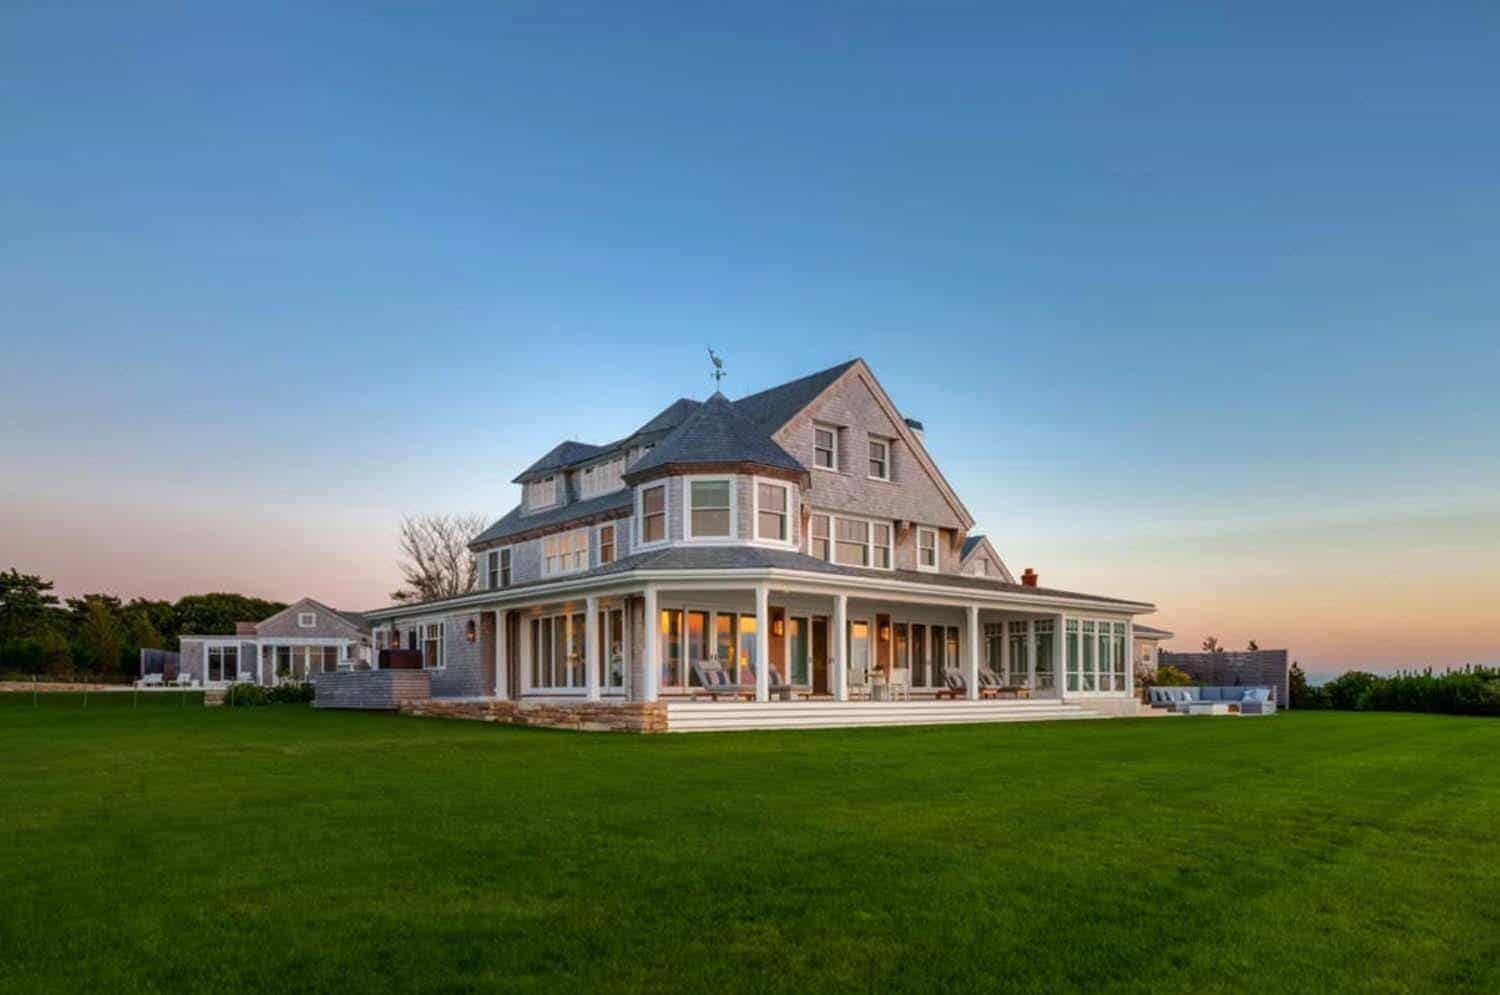 Cape cod beach house hutker architects 18 1 kindesign for Cape cod beach homes